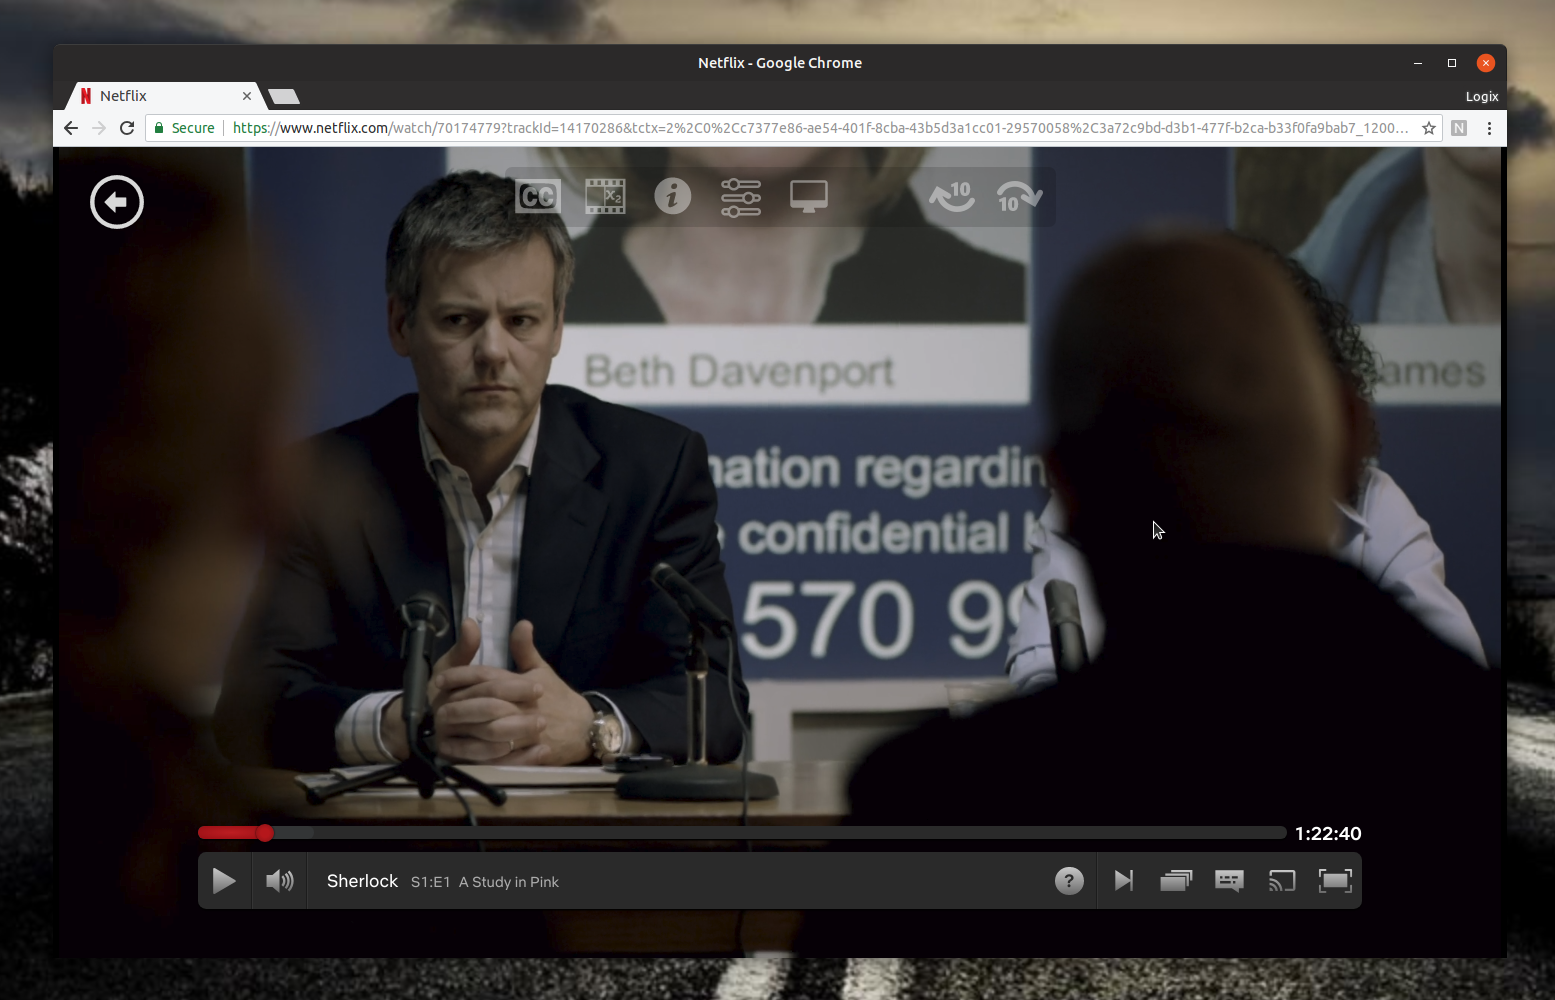 How To Stream Netflix Videos At 1080p Resolution In Google Chrome